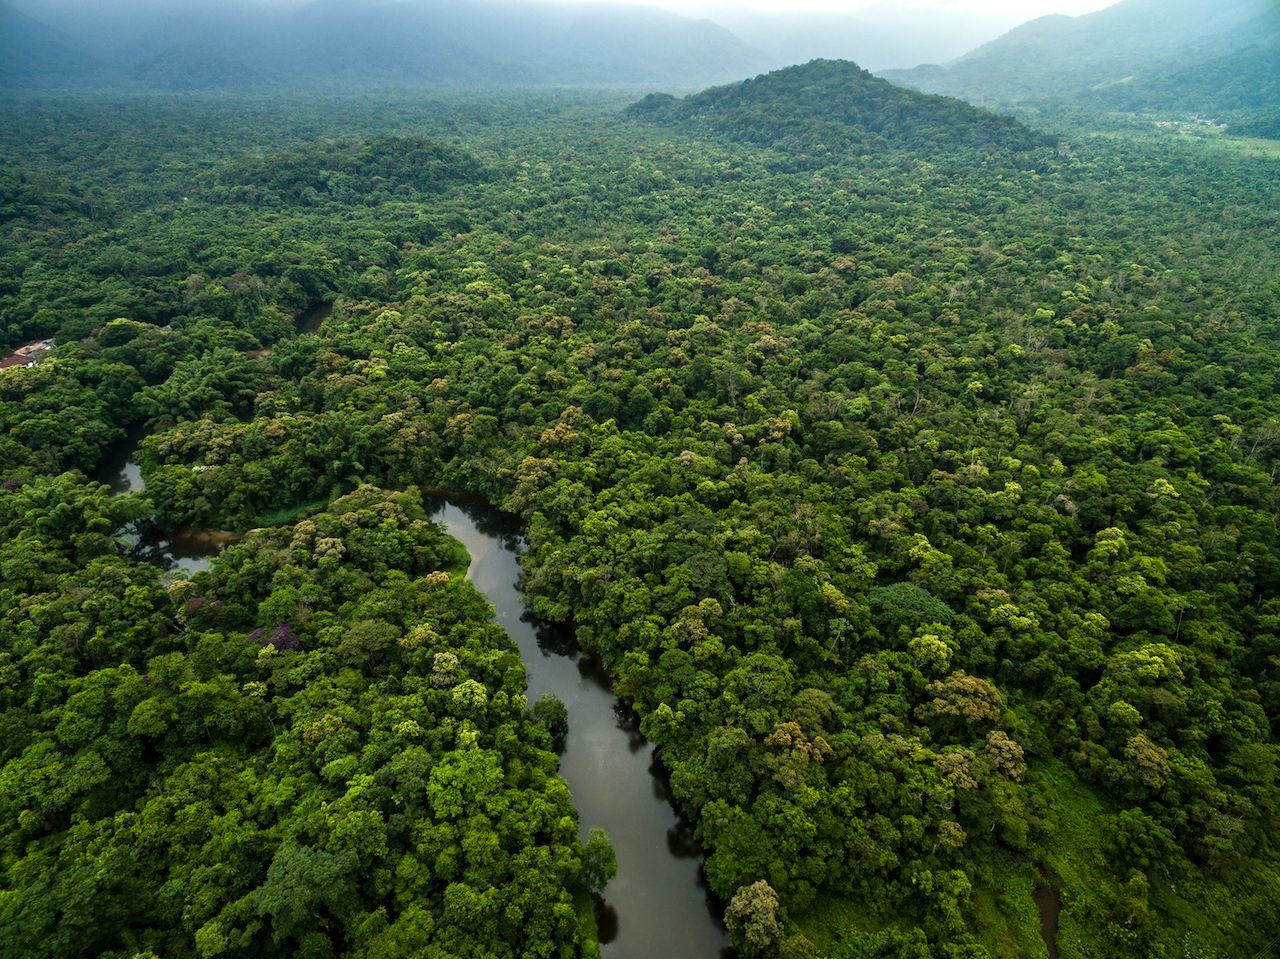 Aerial view of a rainforest in Latin America